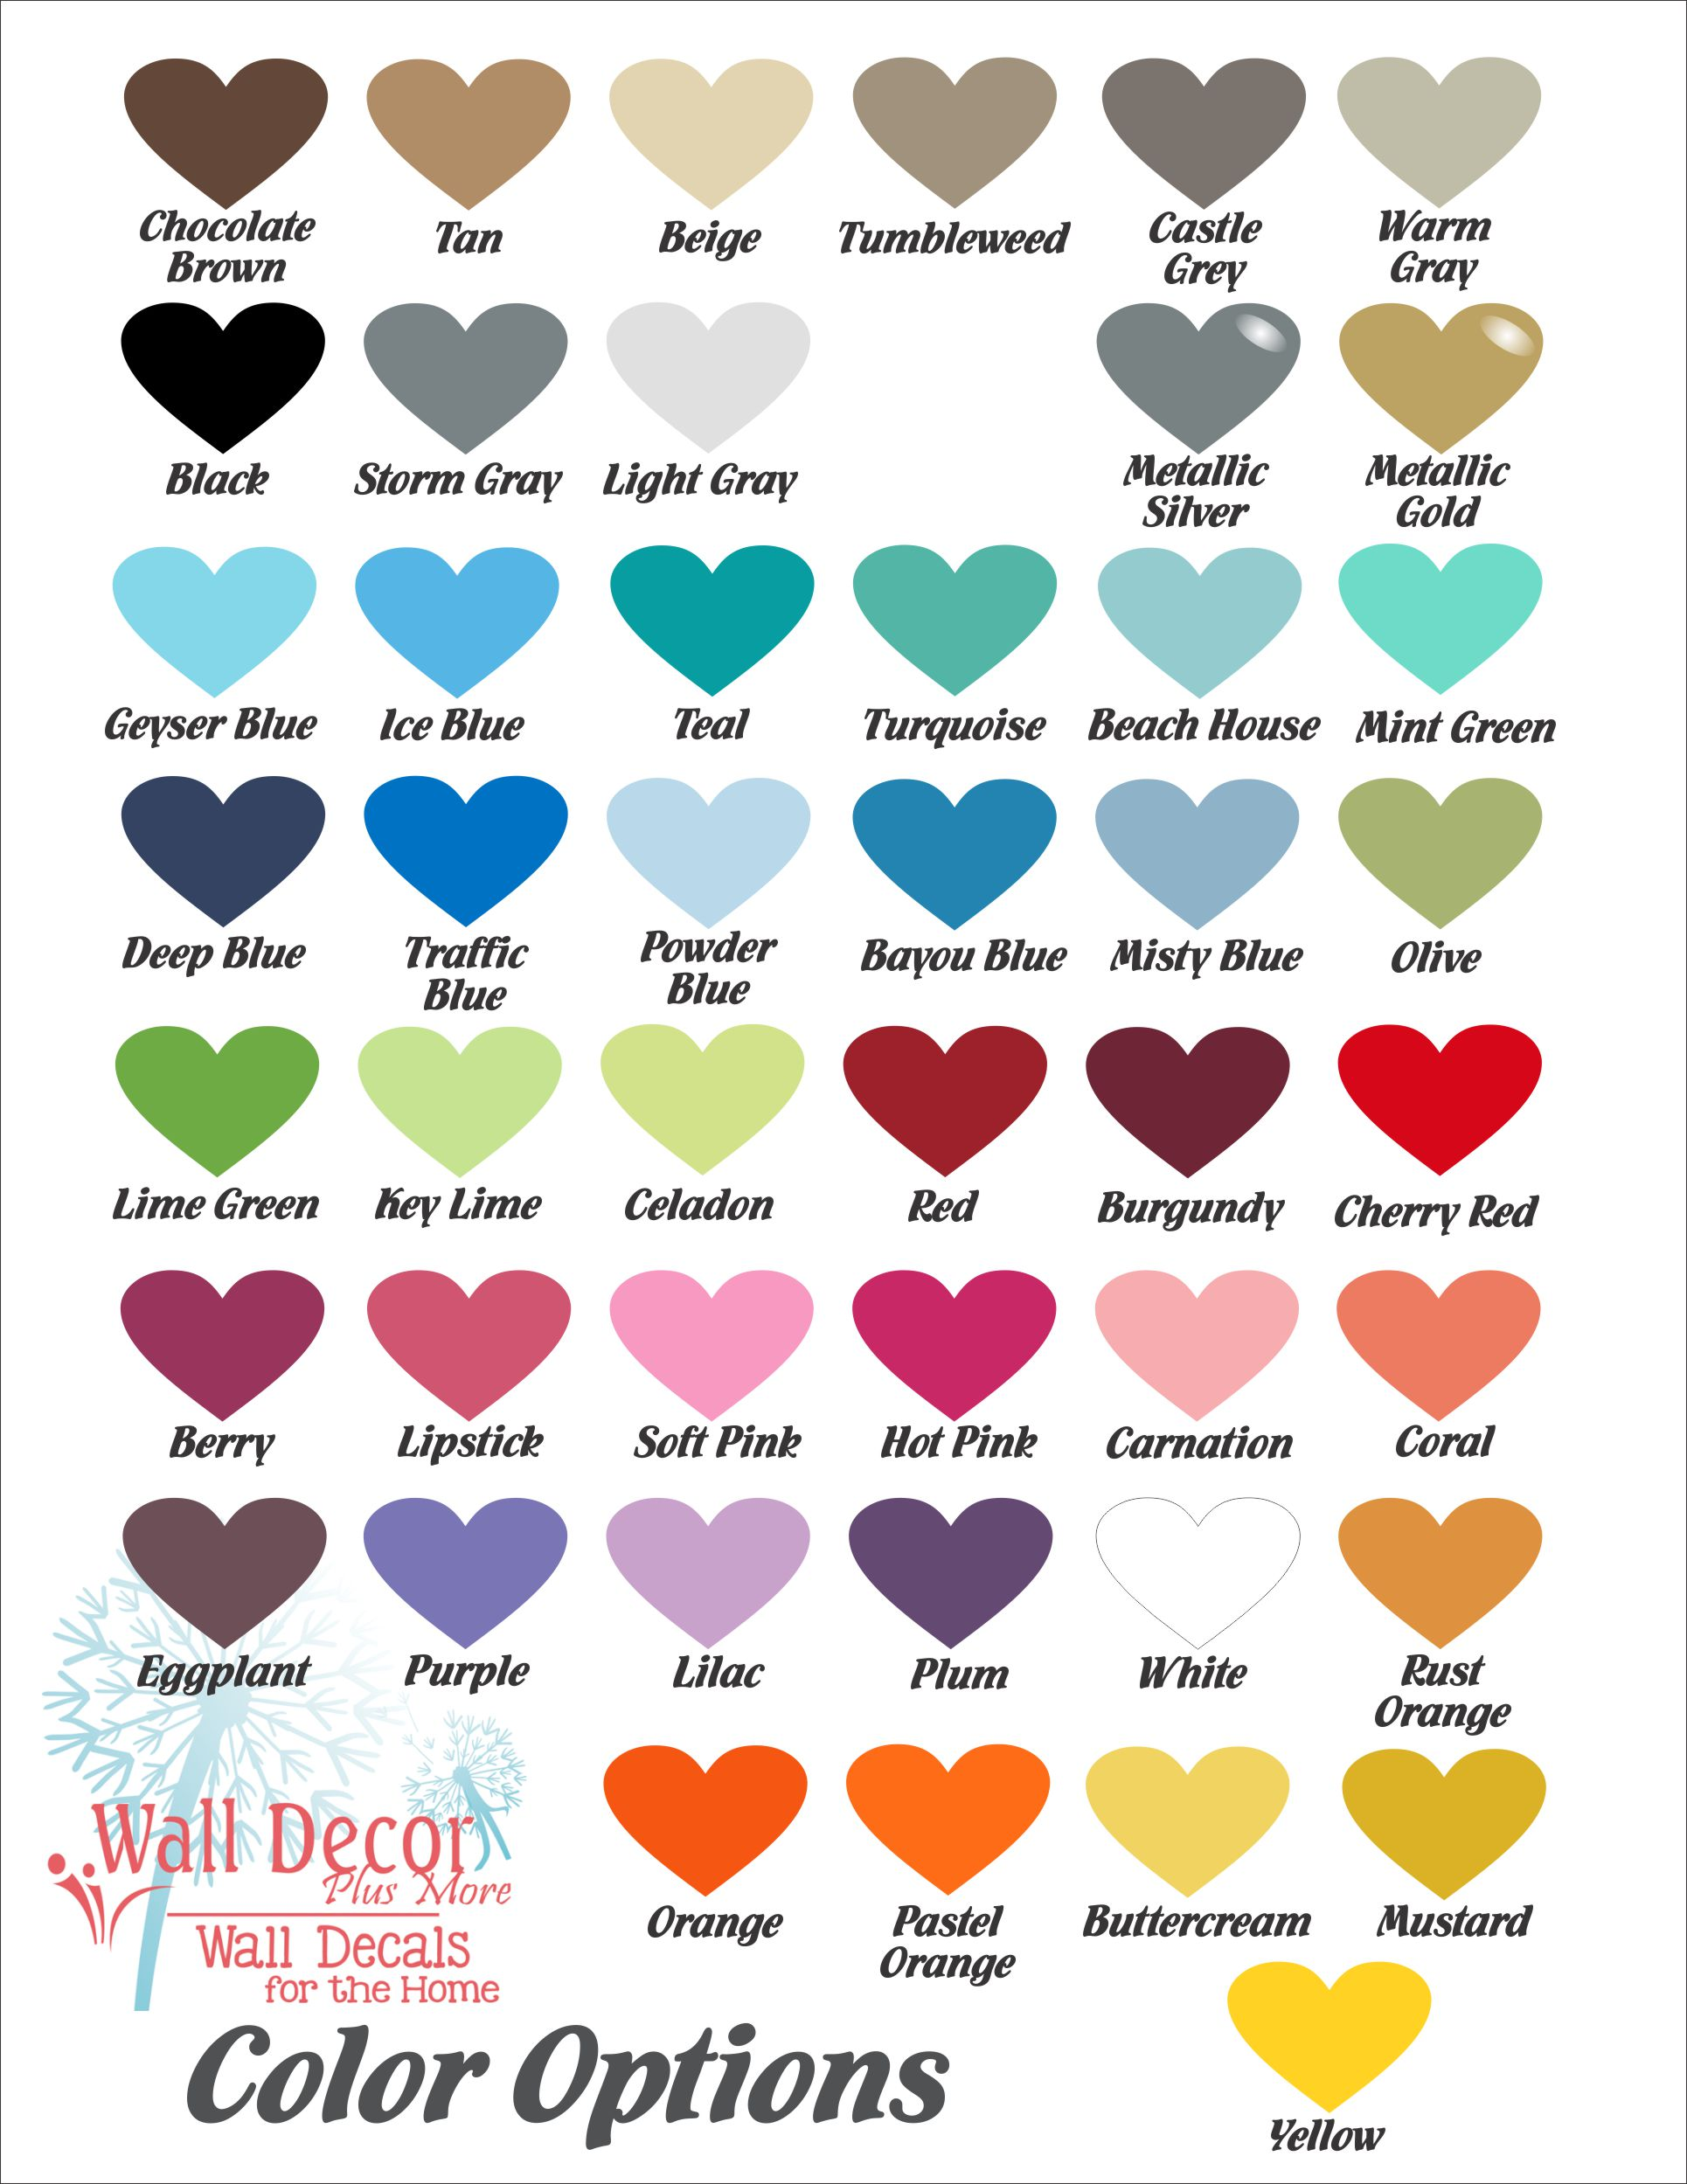 color-options-chart-web-010719.jpg